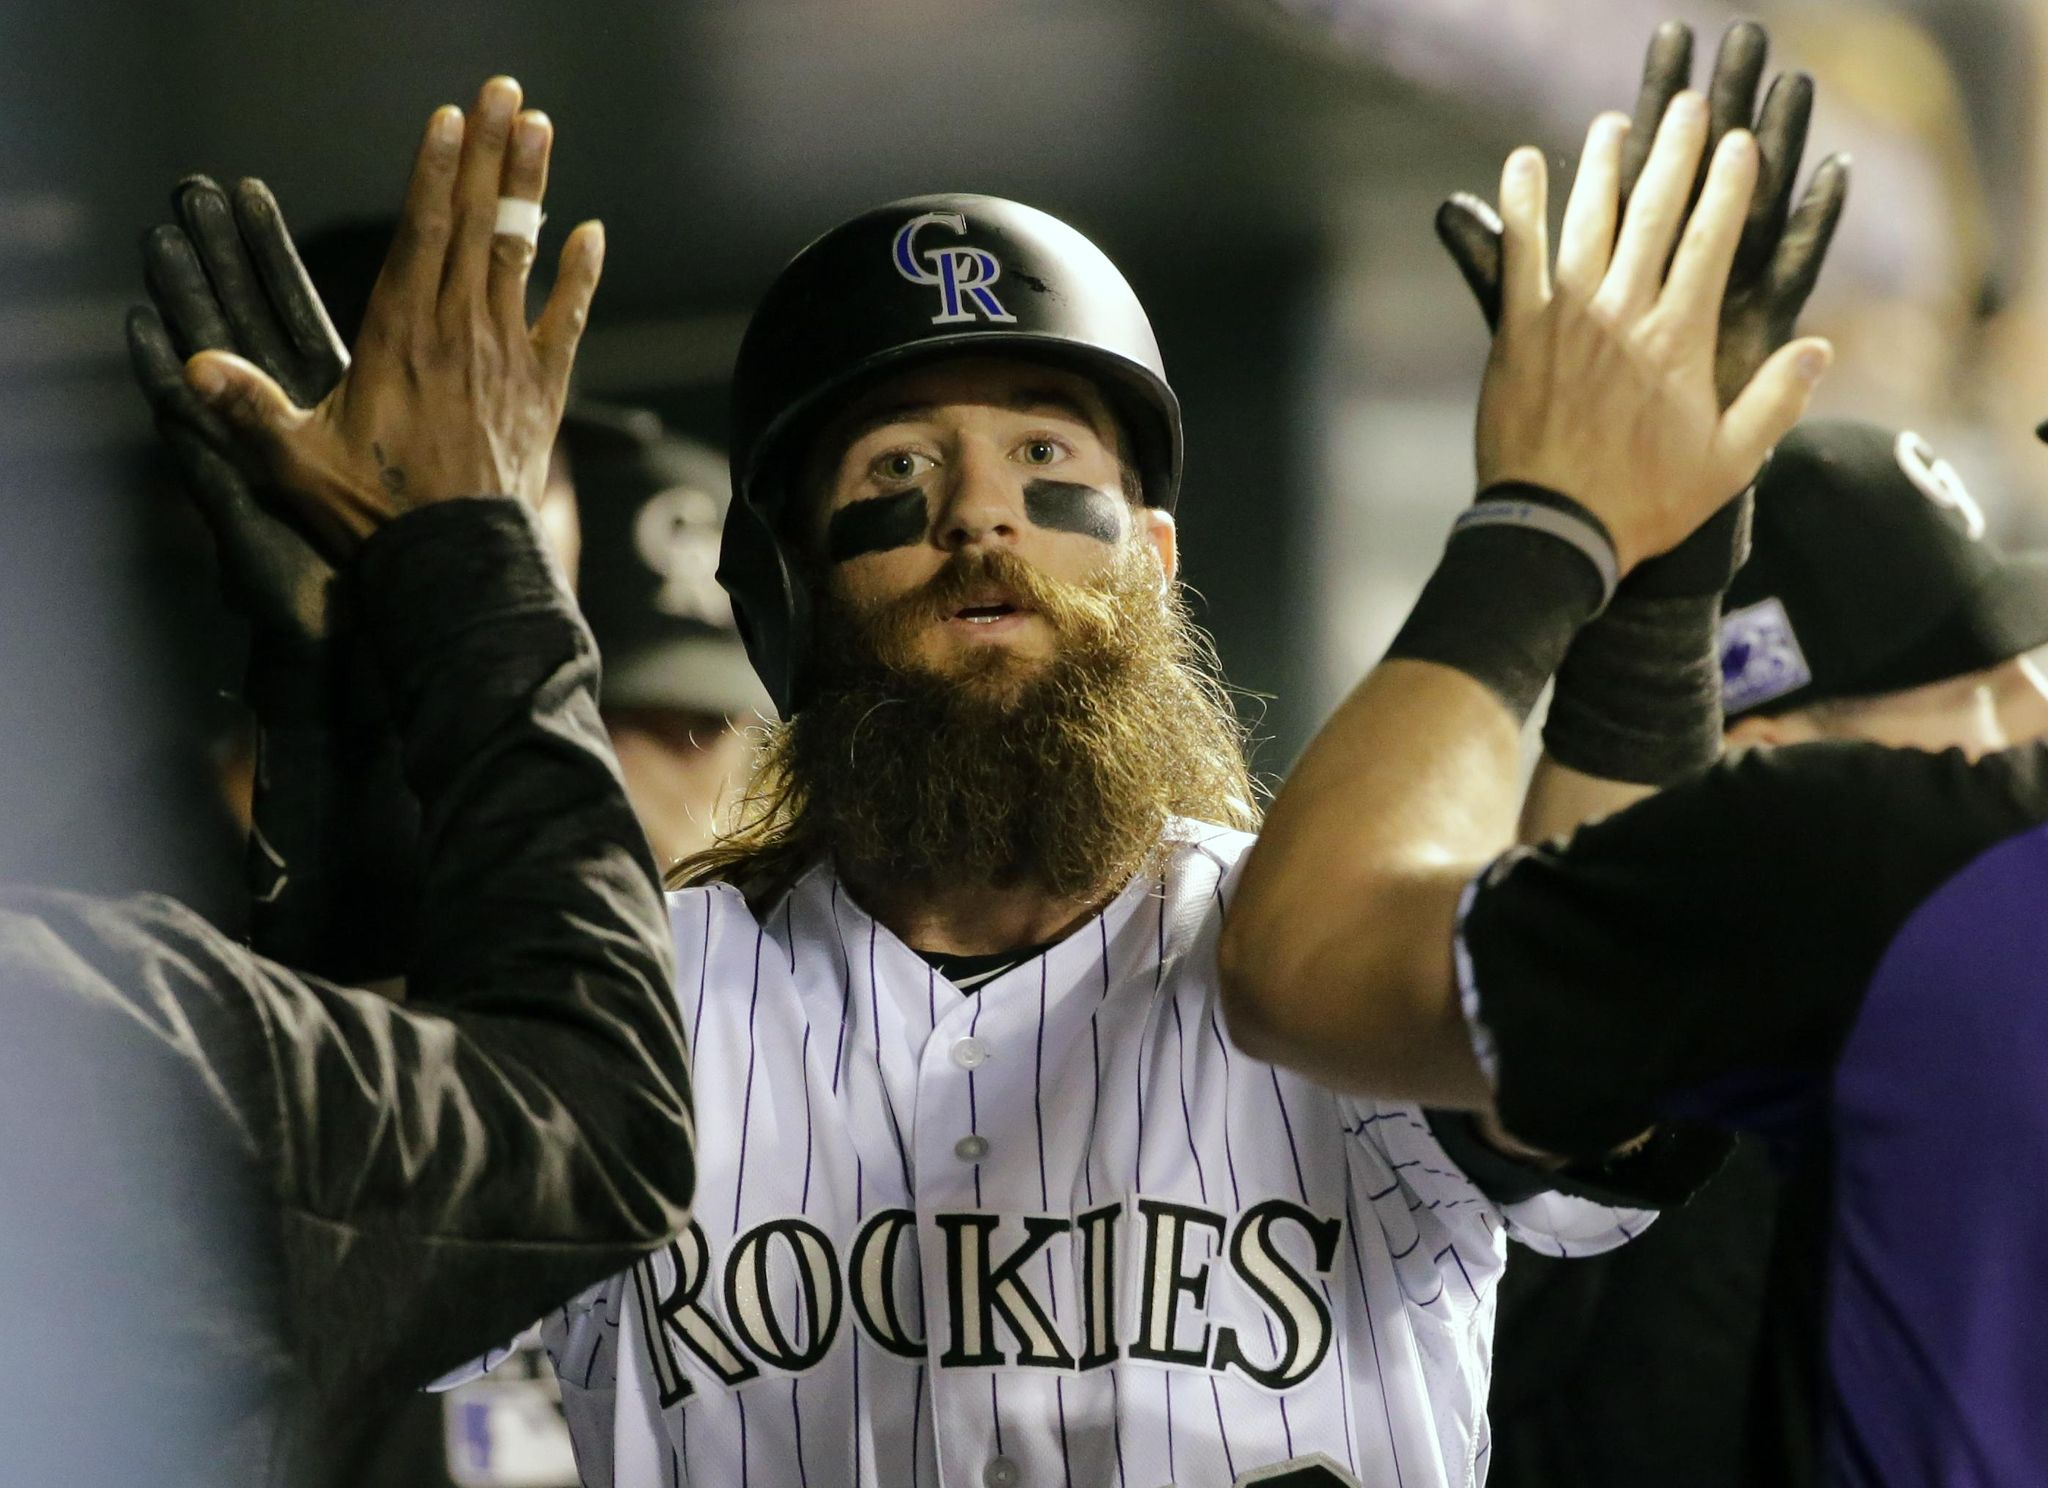 Gray crisp over 7, playoff-chasing Rockies rout Ph...